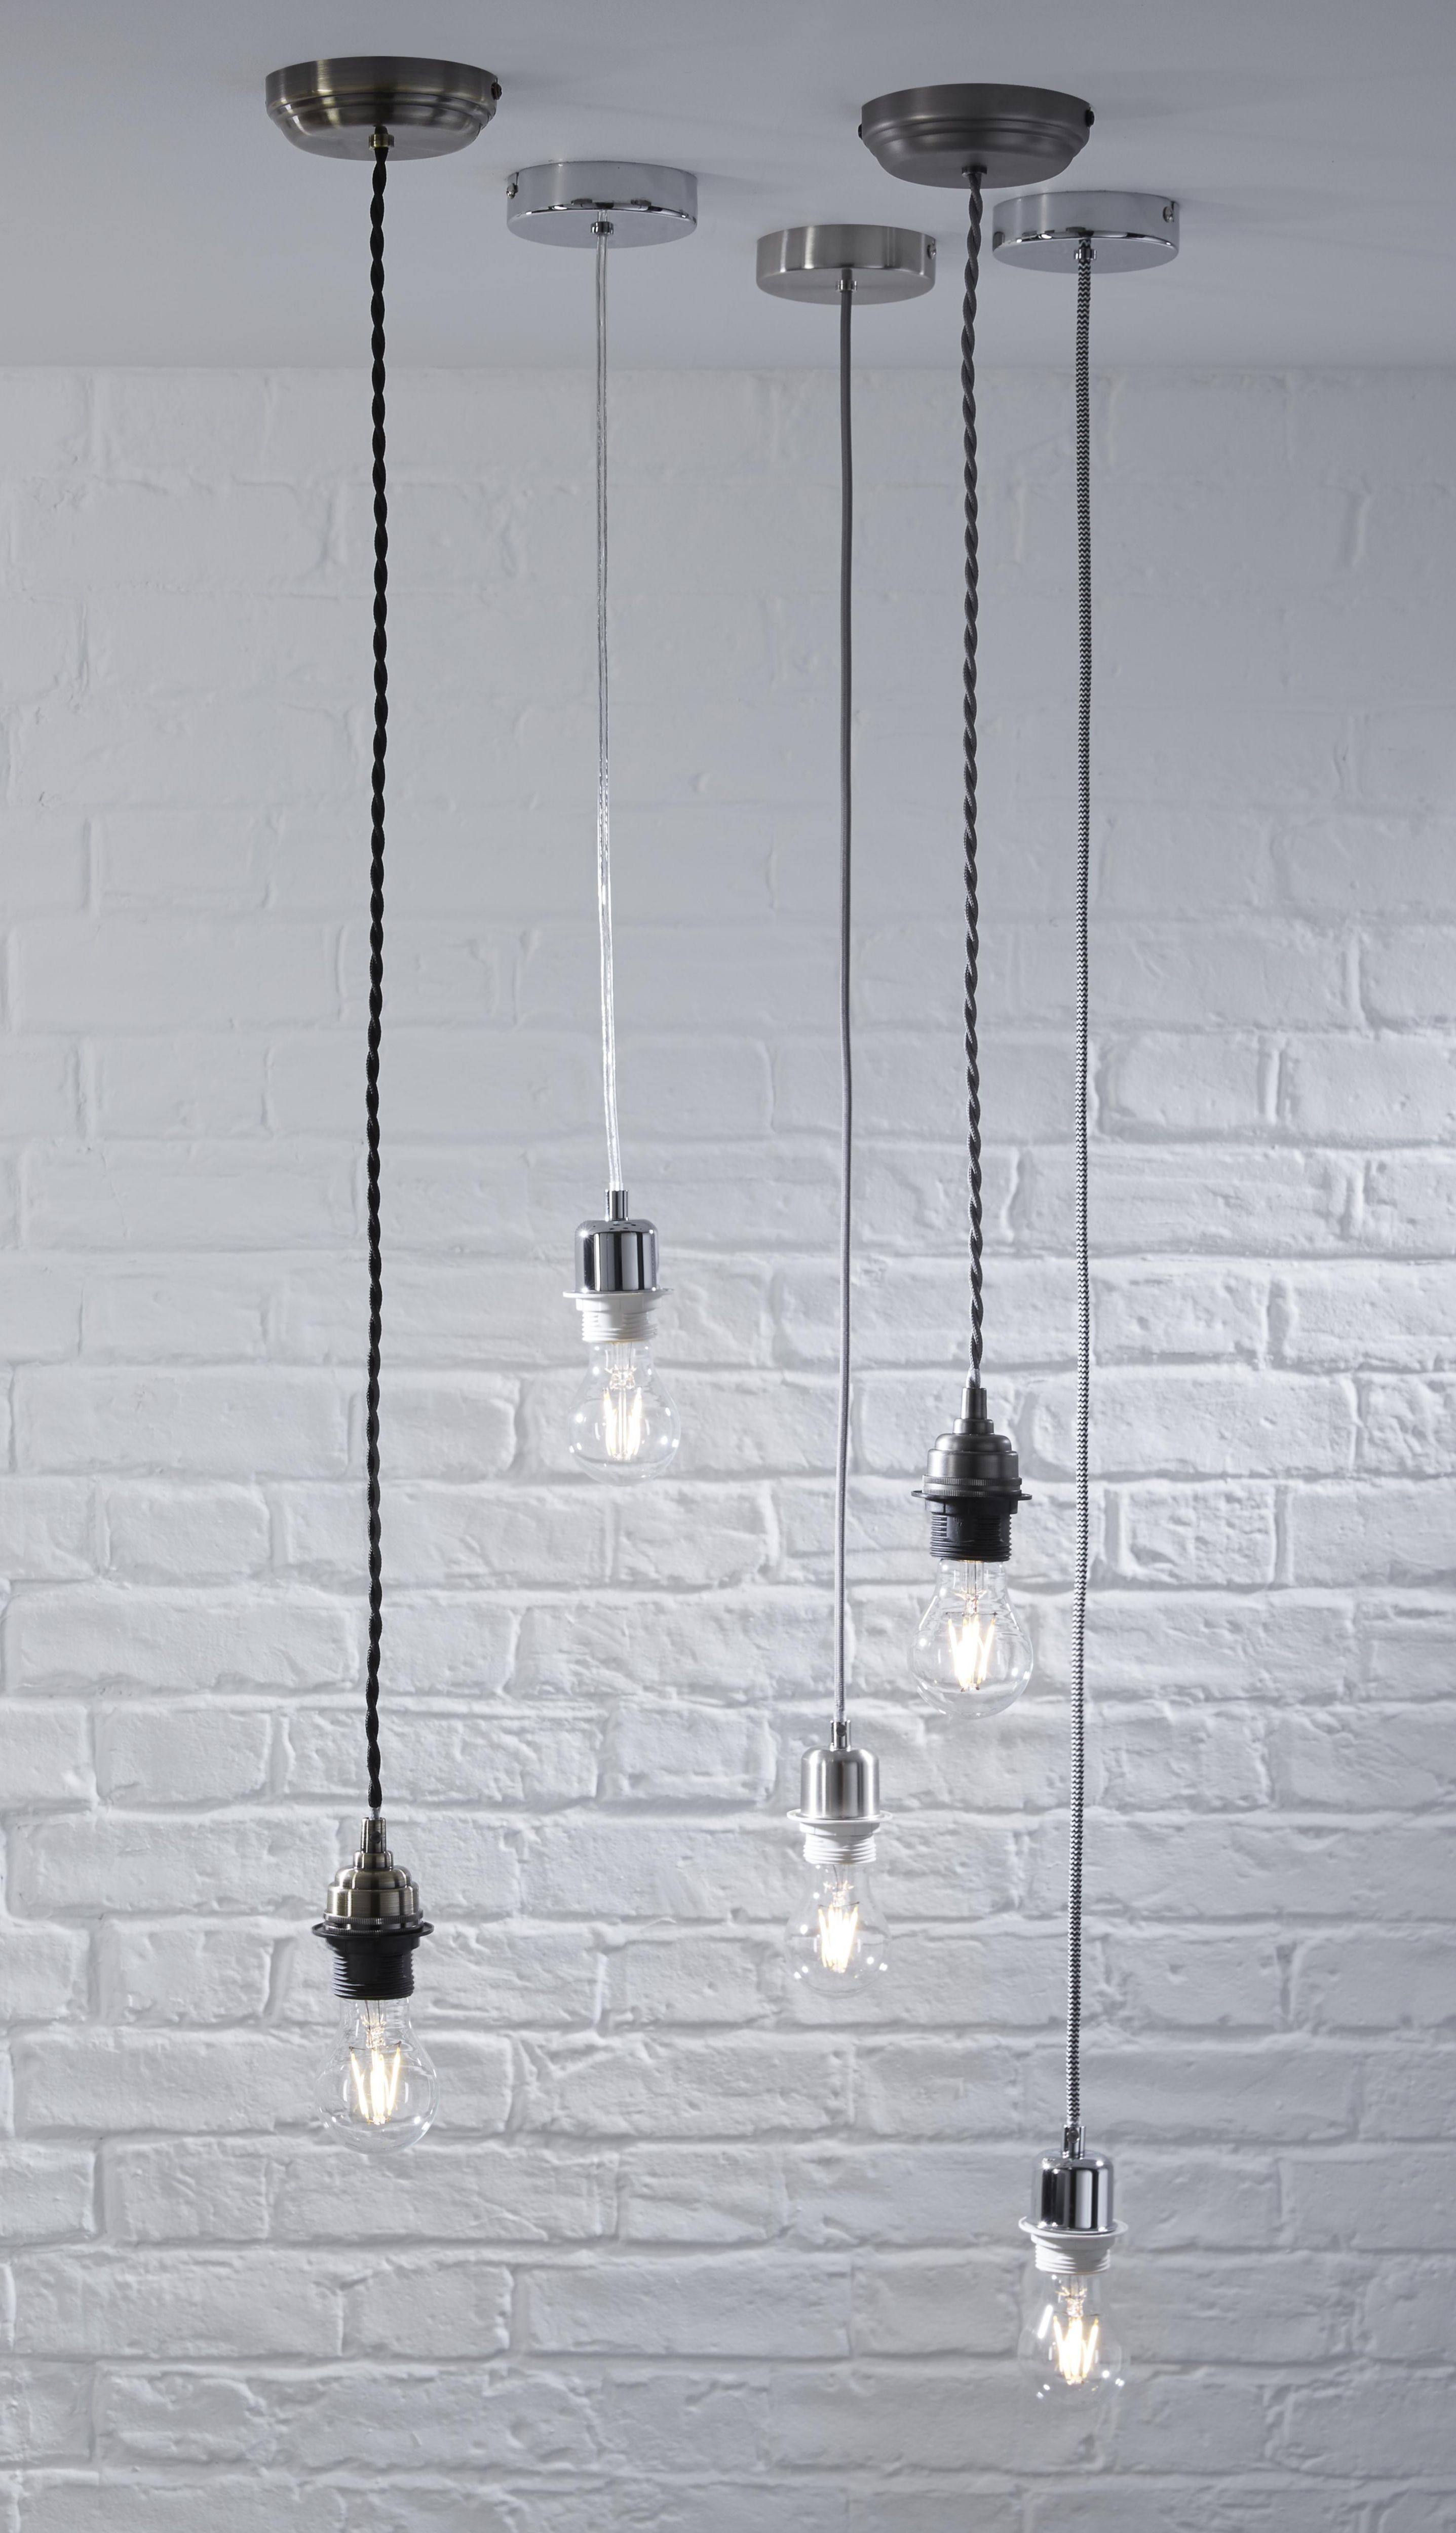 B And Q Bedroom Wall Lights : Image Gallery lights b and q